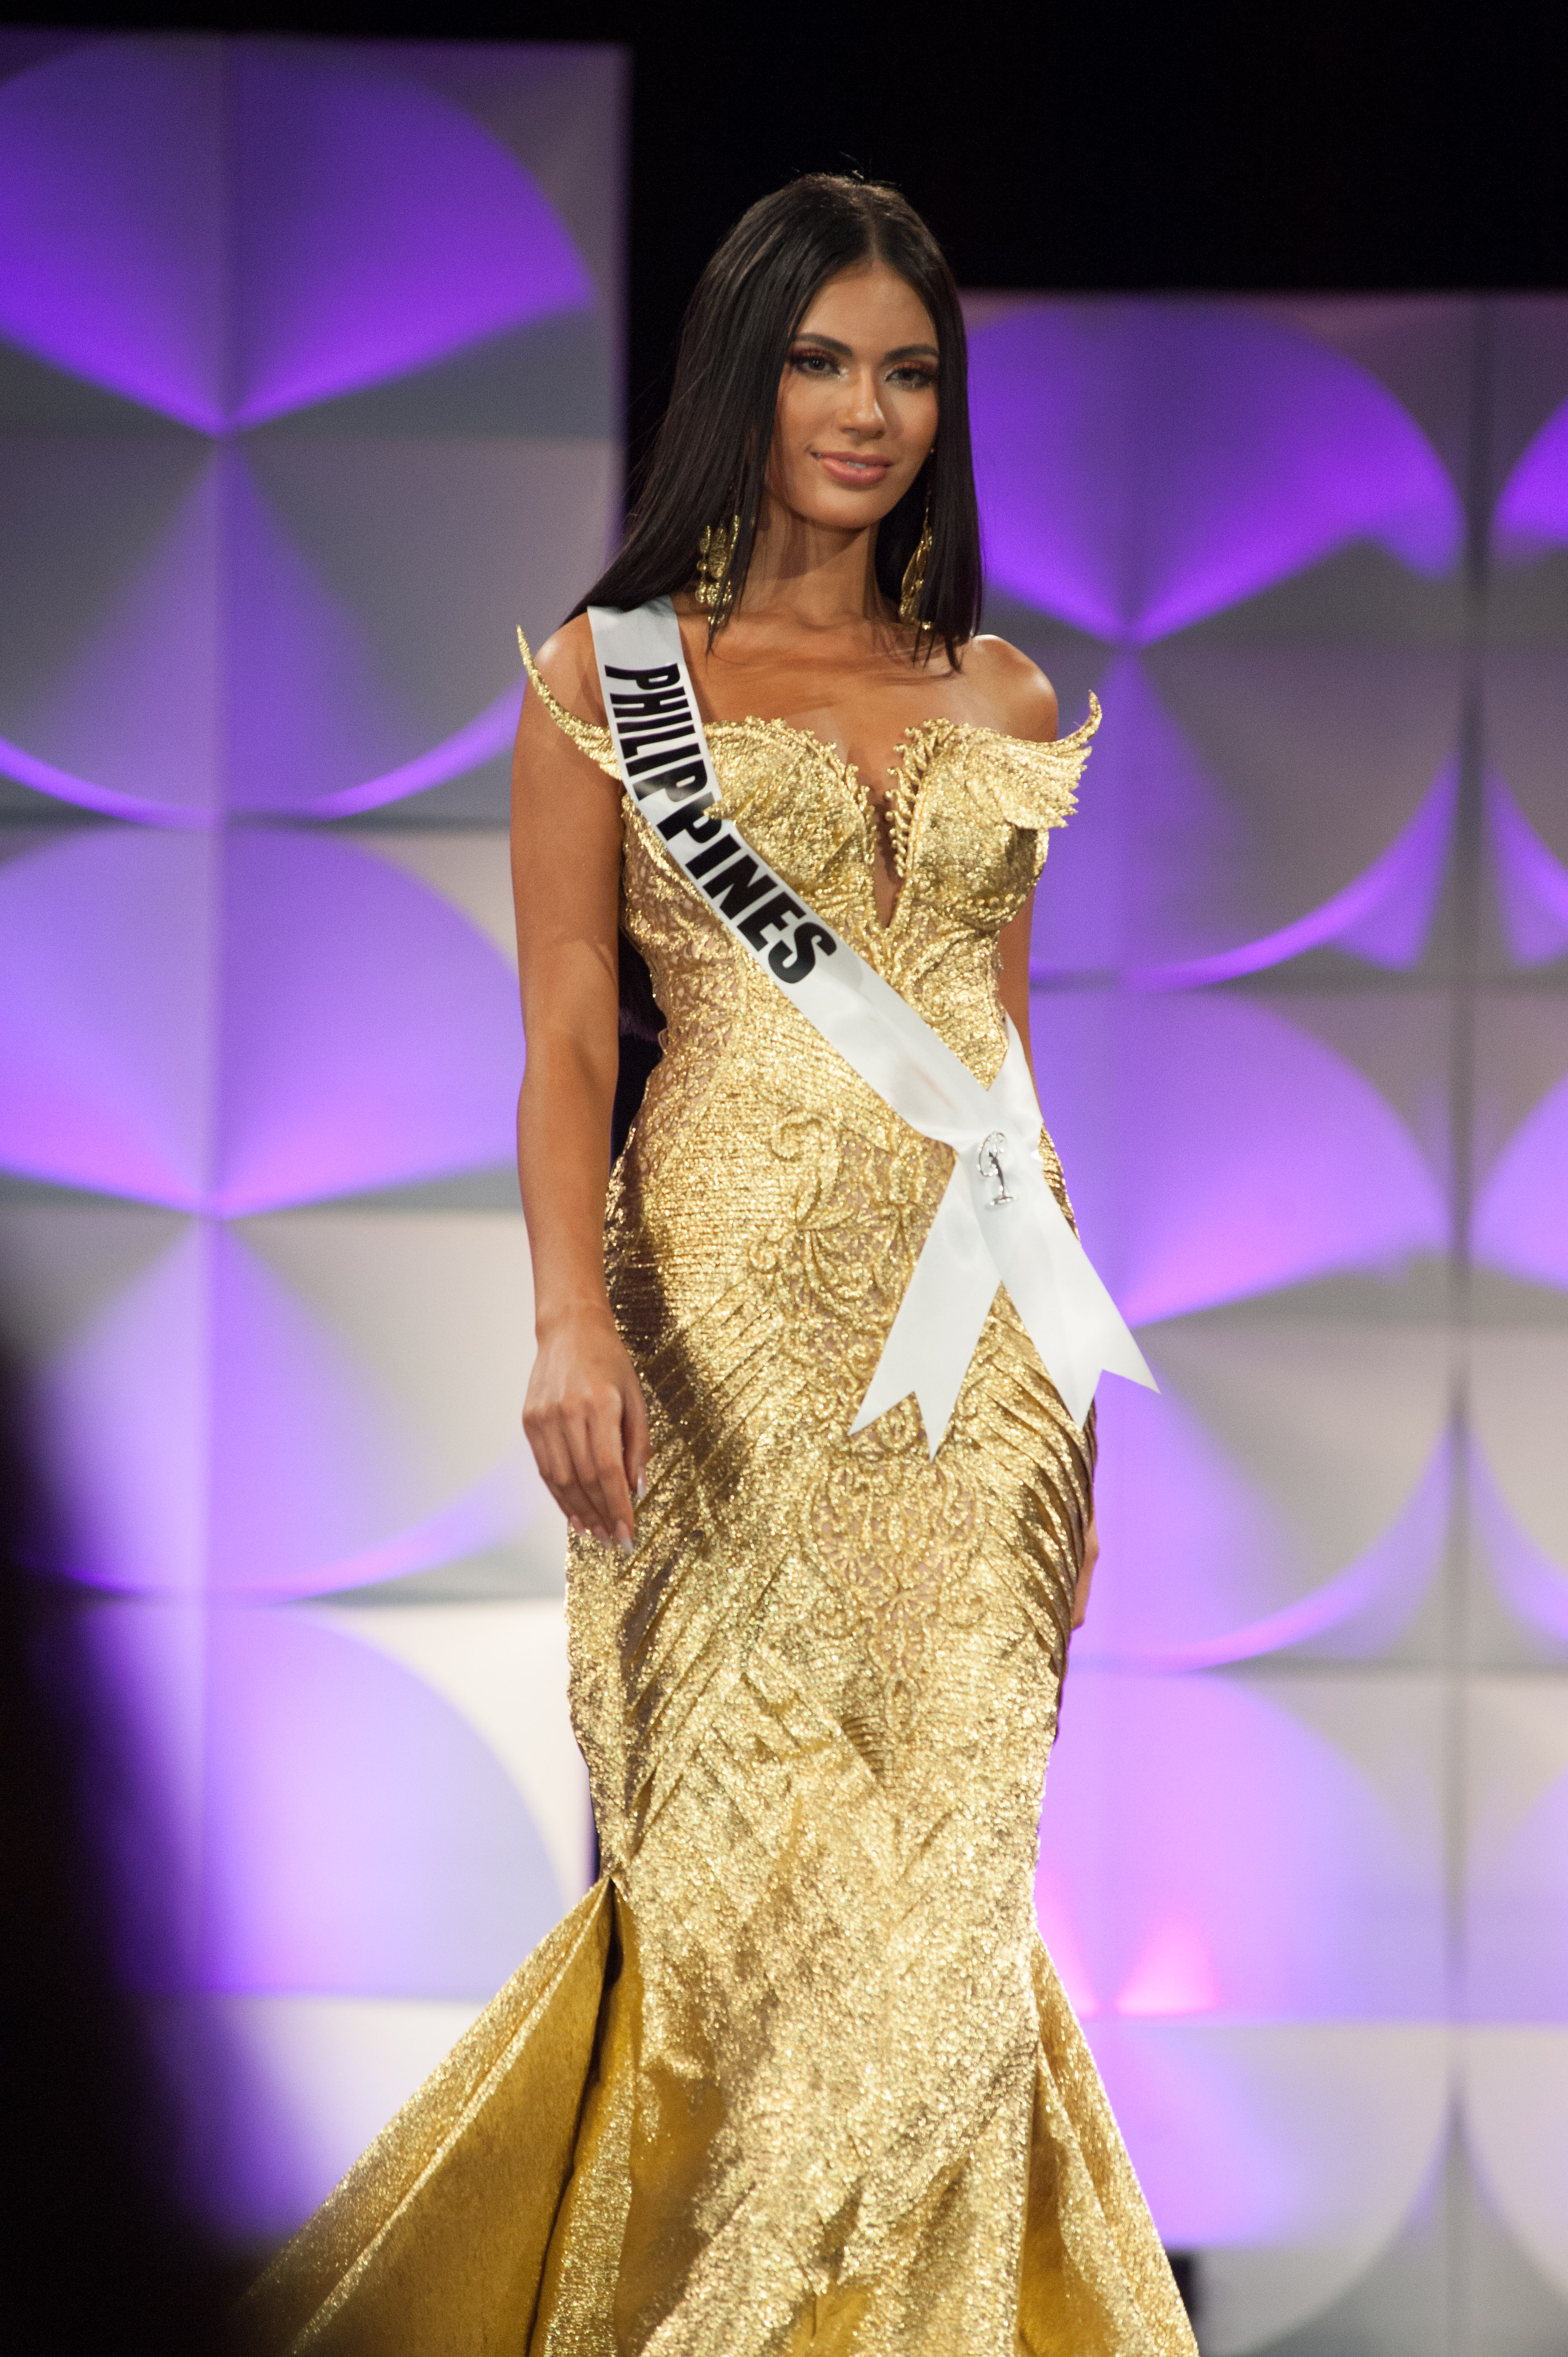 Photo from The Miss Universe Organization